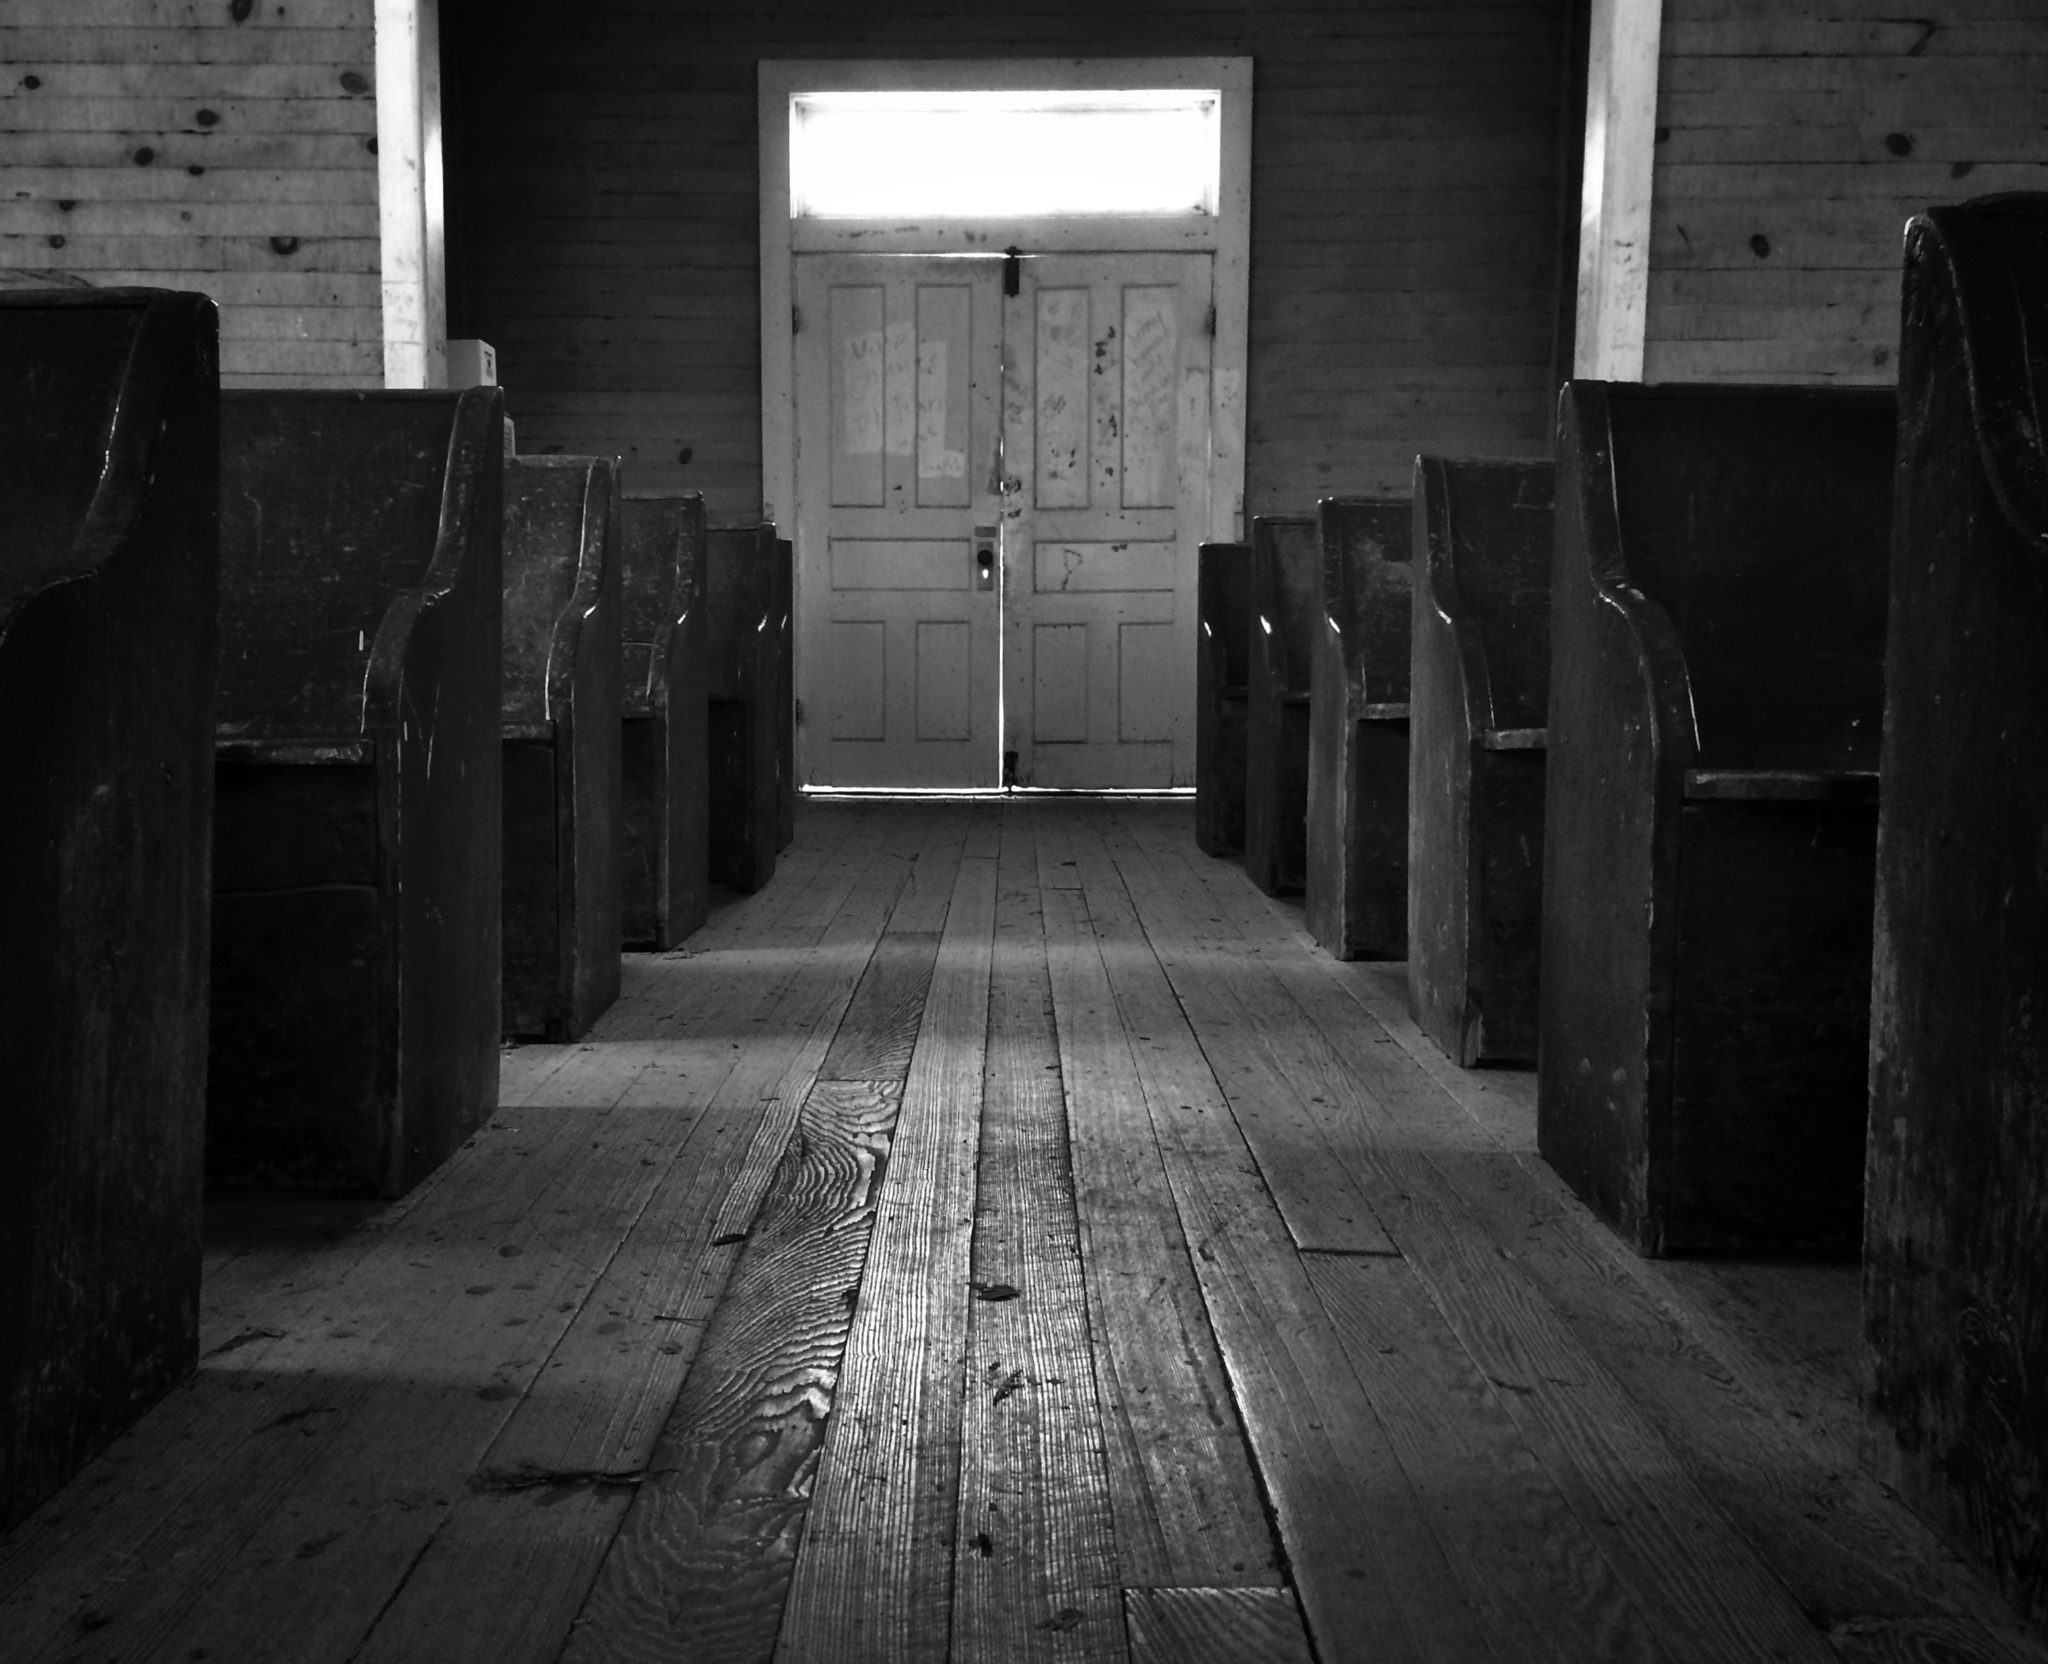 Church pews by Benjamin Faust from stocksnap.io